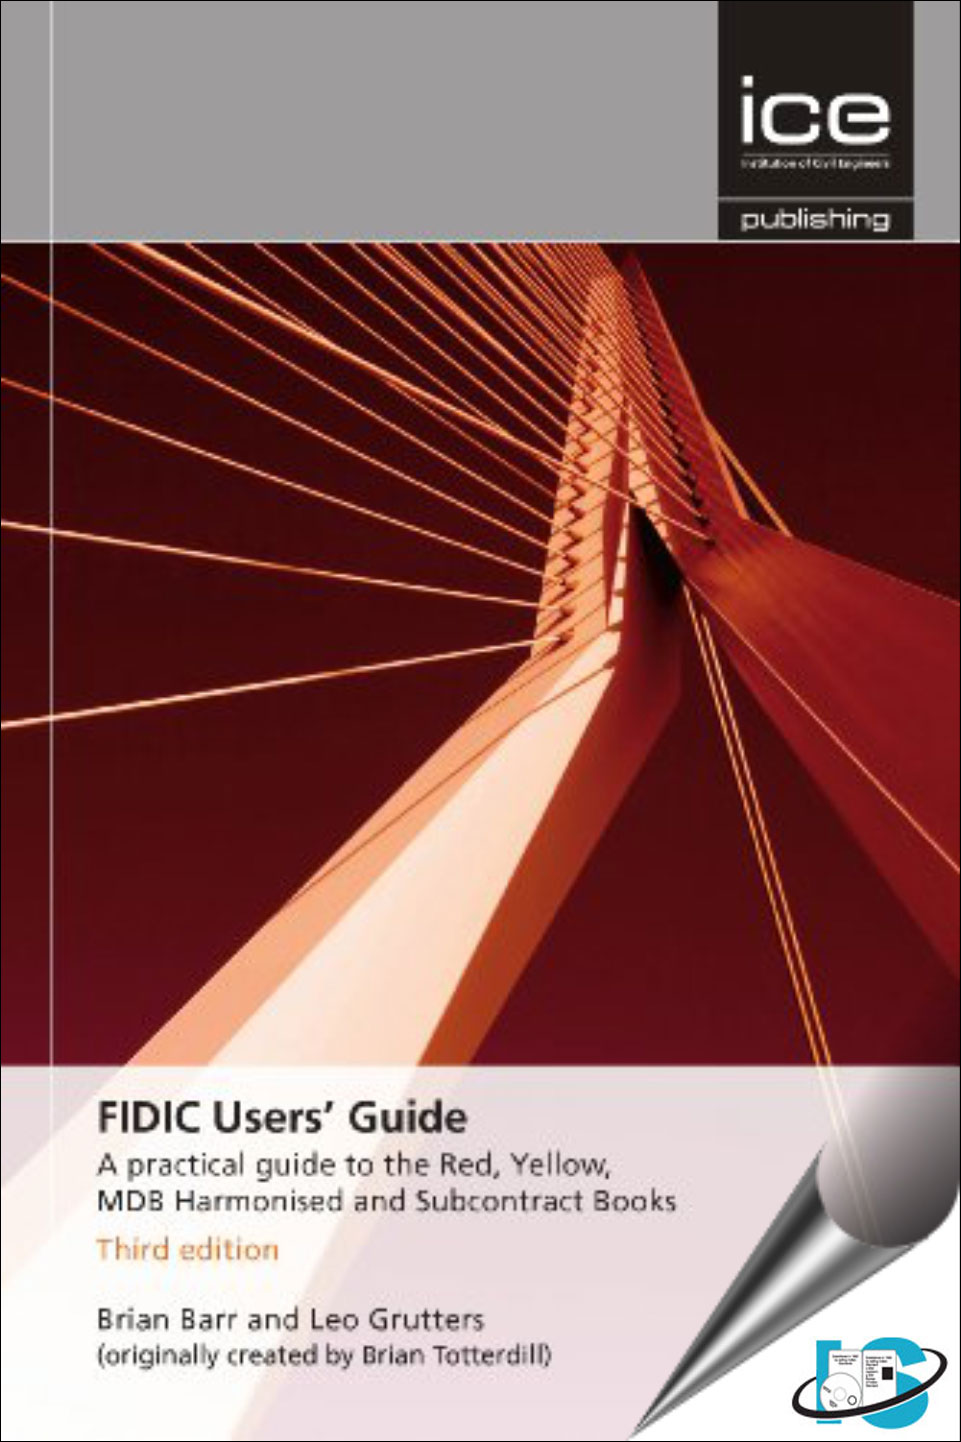 article on fidic silver book The attached article focuses on the changes made to the silver book only, since that is the contract form in the fidic suite most relevant to limited recourse financing of construction projects, and examines the impact of the changes in the second edition for those parties that elect to use the fidic.